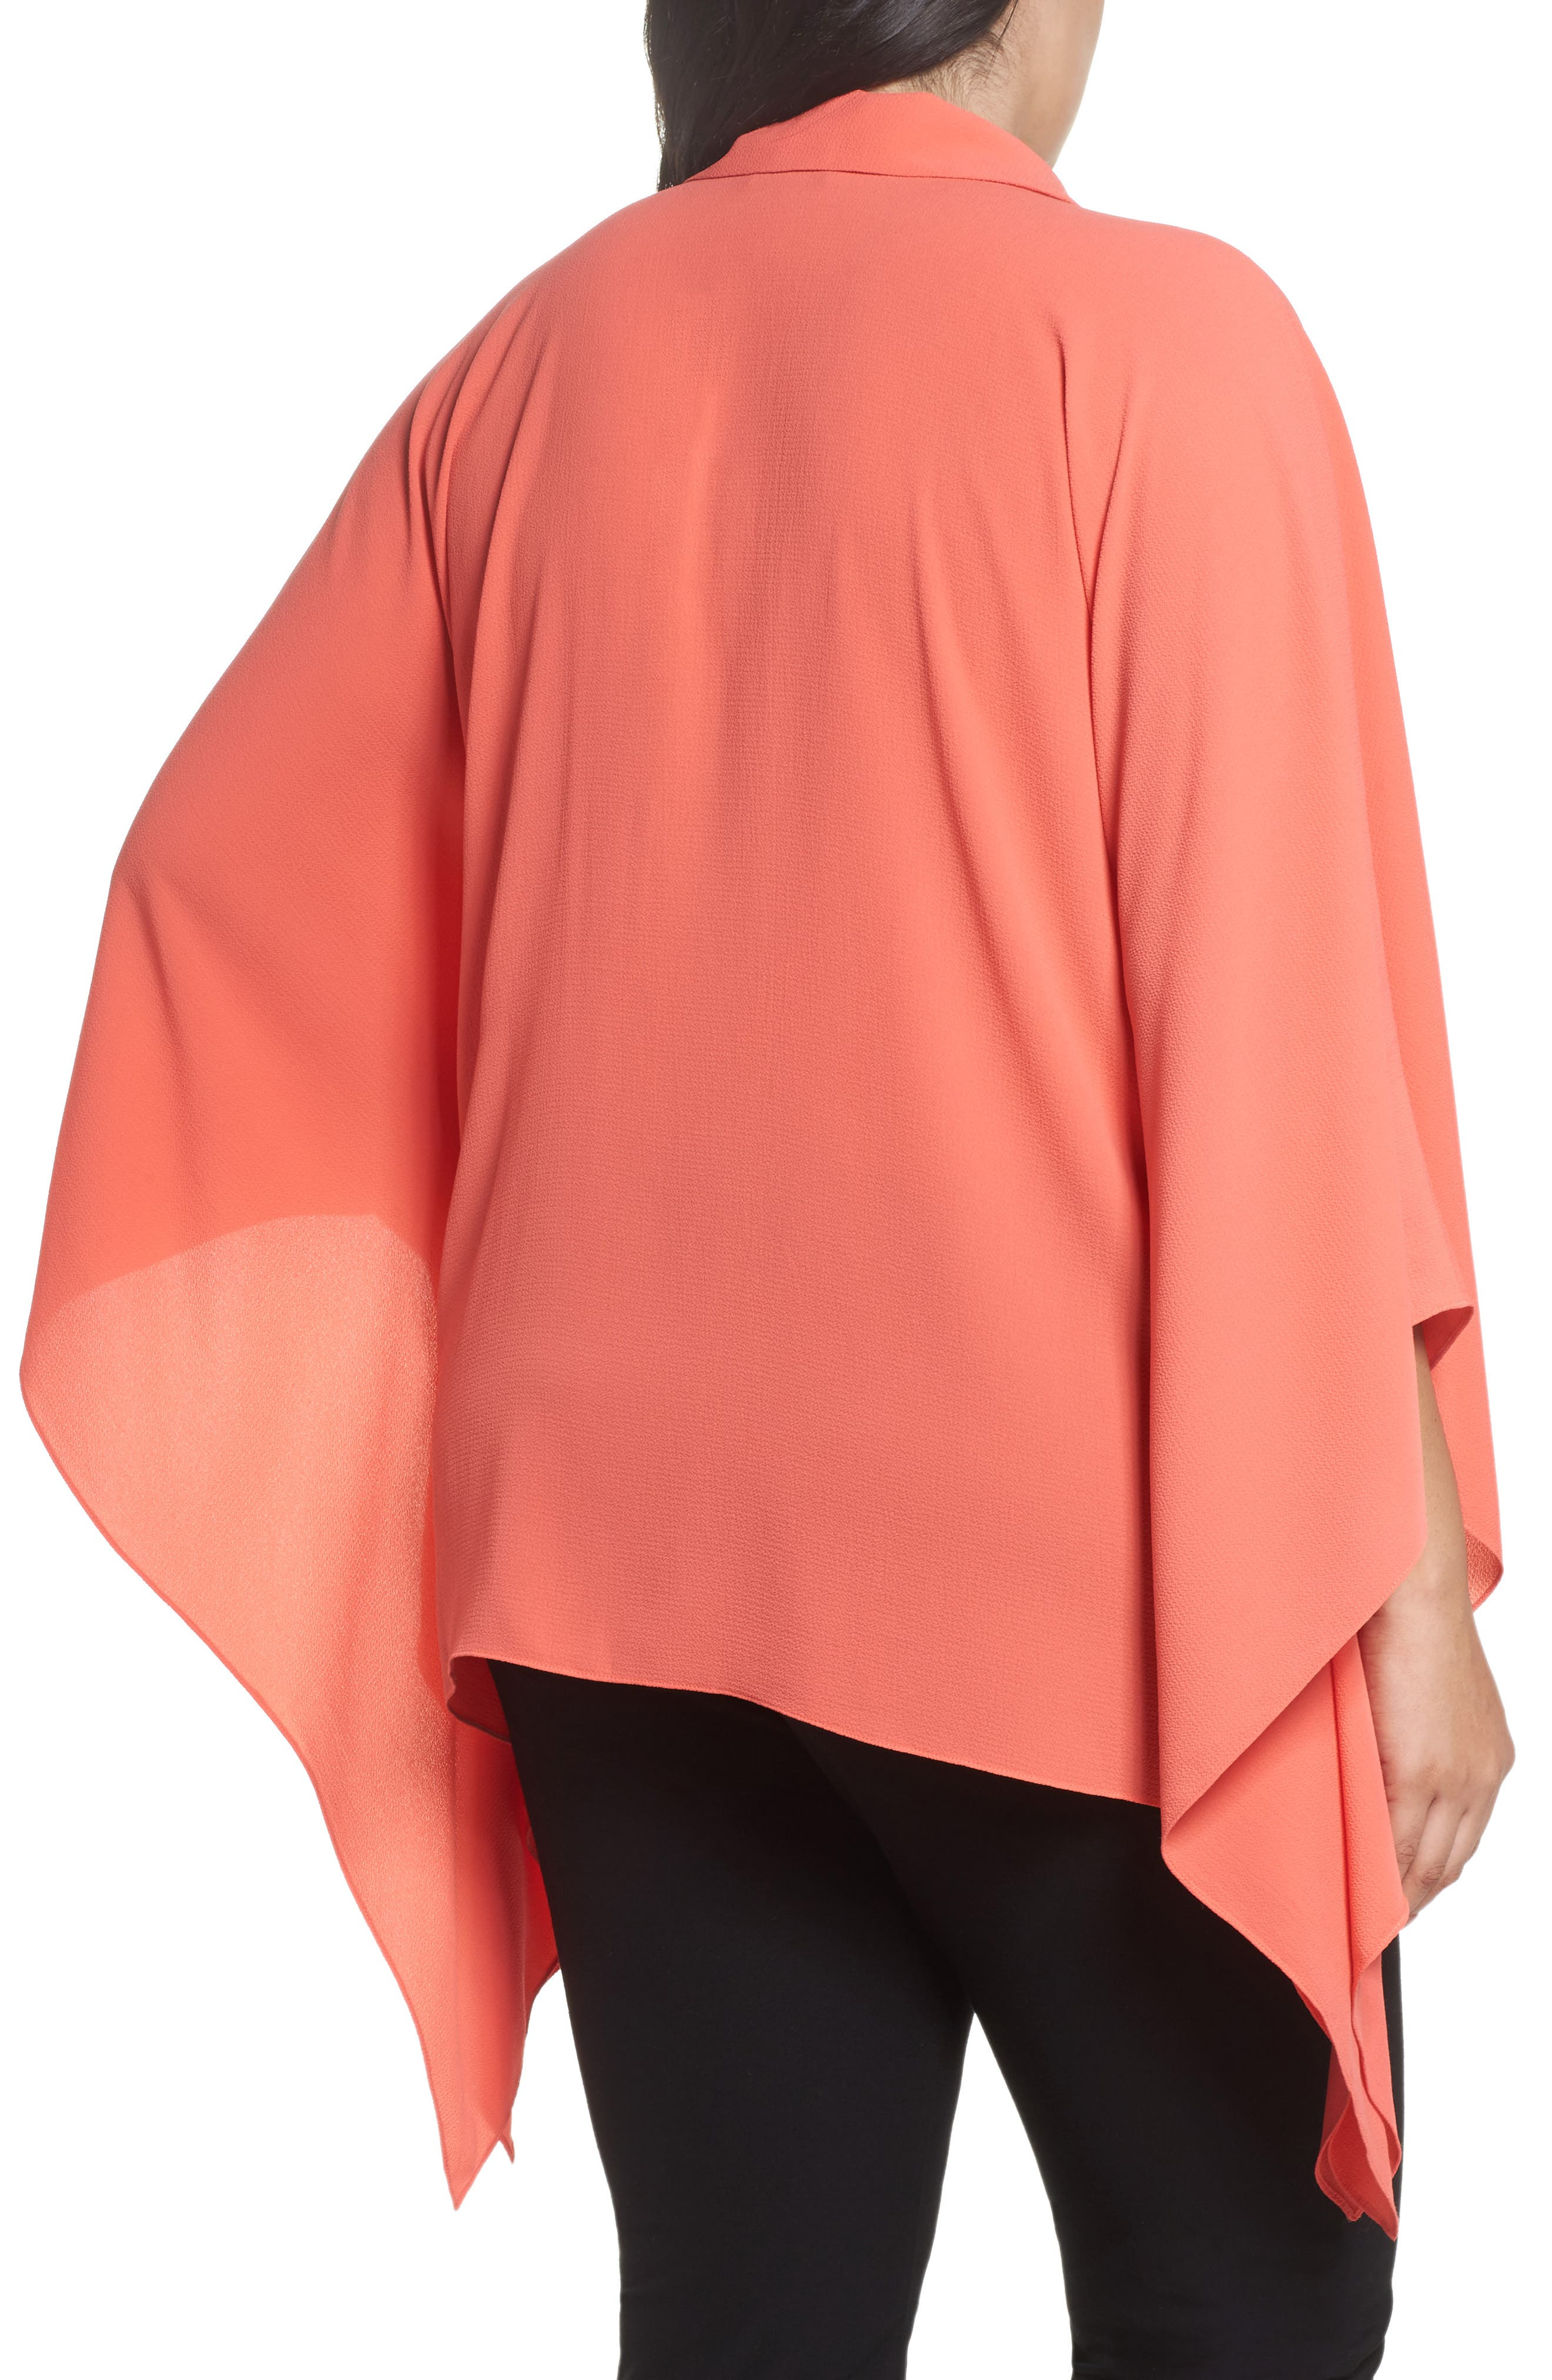 Button Down Collared Poncho Top,                             Alternate thumbnail 2, color,                             Melon